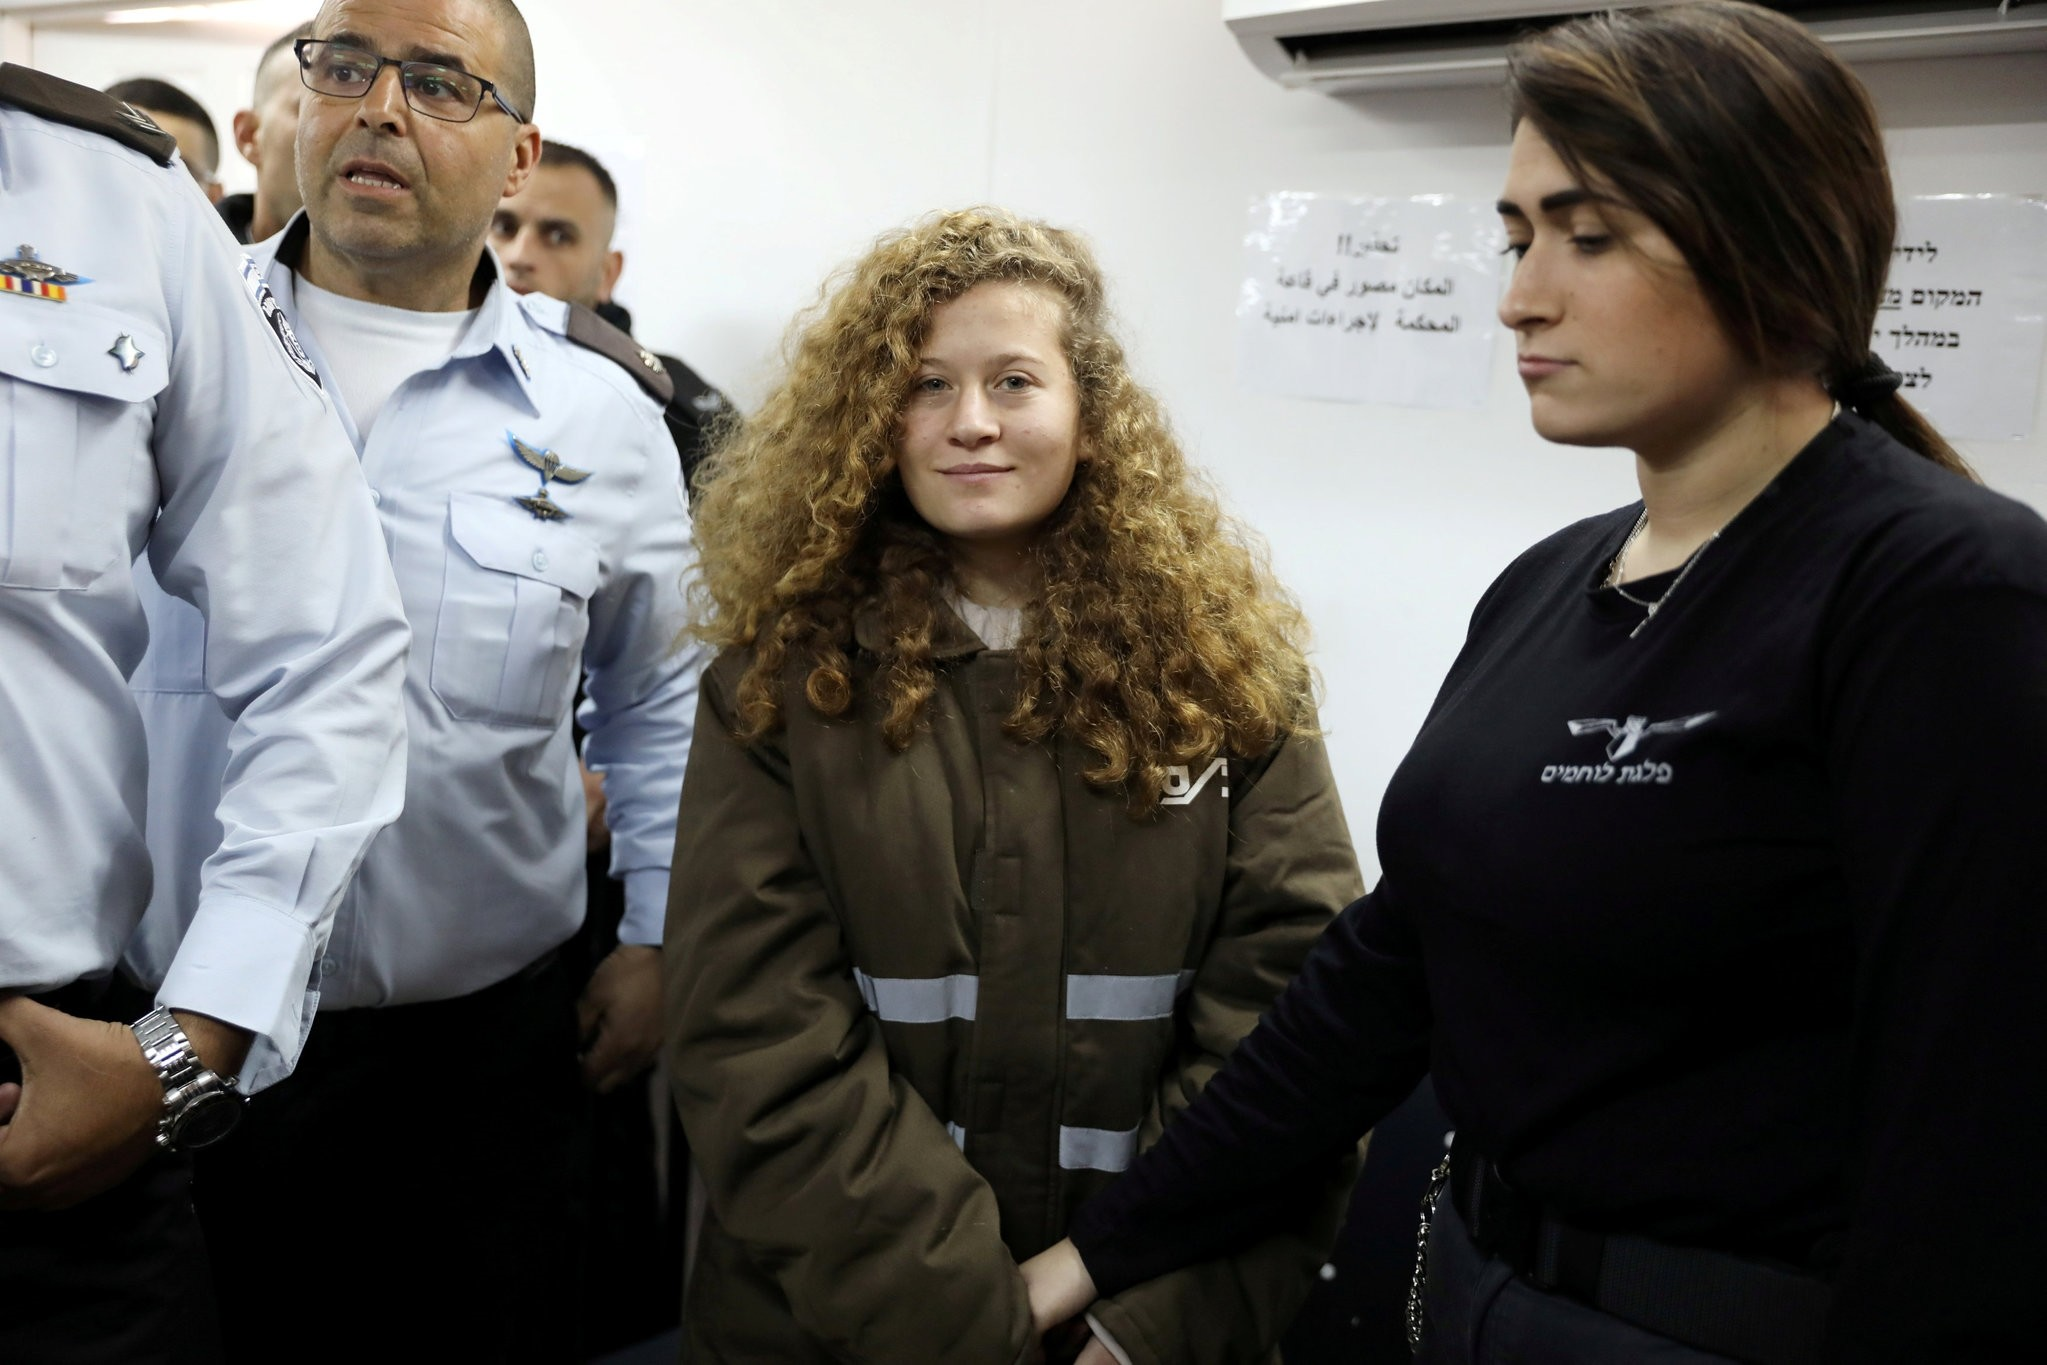 Palestinian teen Ahed Tamimi enters a military courtroom escorted by Israeli security personnel at Ofer Prison, near the West Bank city of Ramallah, January 15, 2018. (REUTERS Photo)